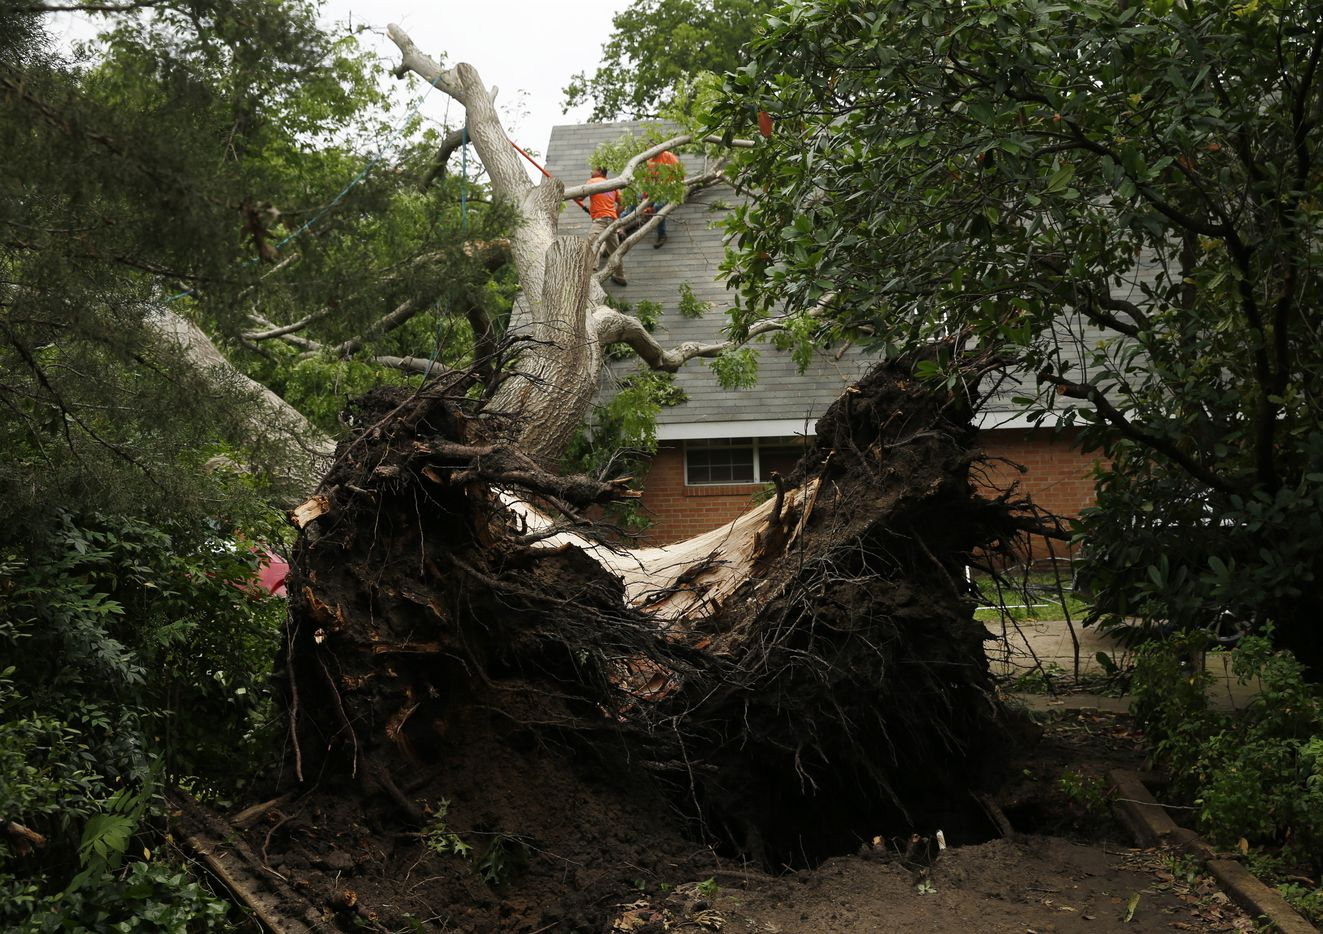 Manuel Alcantar trims a red oak from the roof of a house after Tuesday's tornado in Denton.